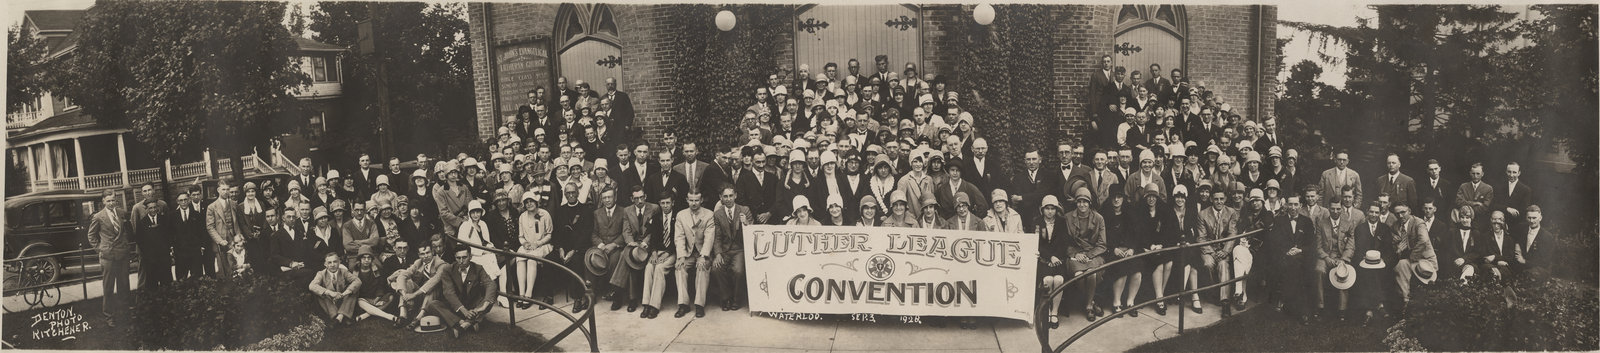 The 1928 Luther League convention, held at St. John's Evangelical Lutheran Church in Waterloo, Ontario.